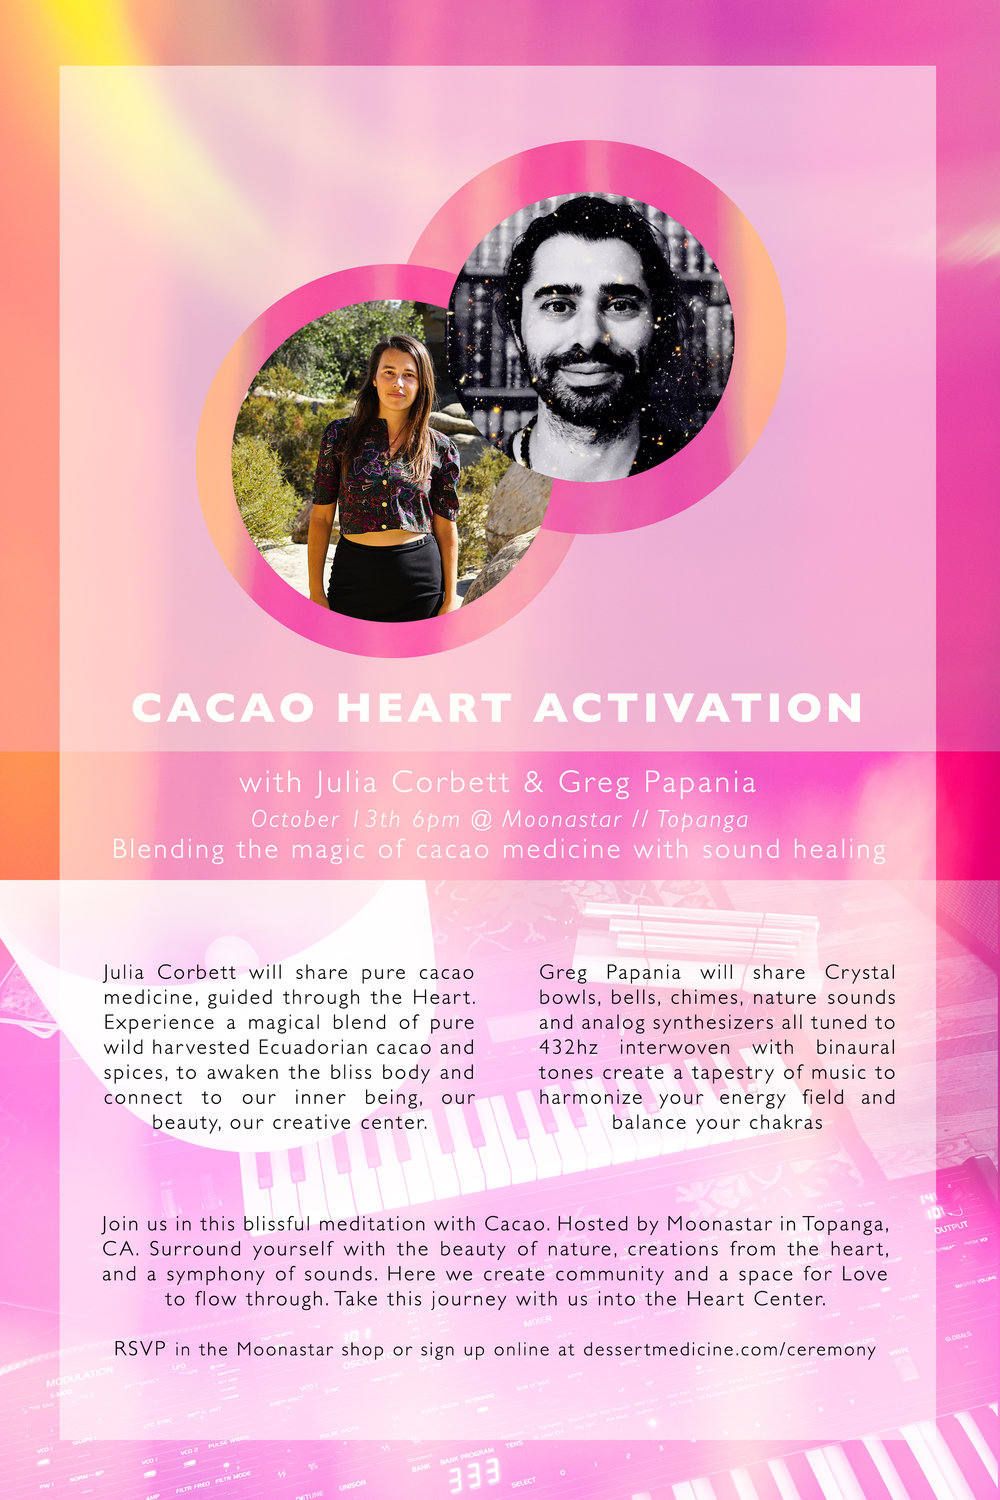 Heart Activation - Join us for Cacao ceremony in Topanga, CAJulia Corbett & Greg Papania will guide us through the medicine, into the heart, and attune the mind, body and spirit. Here we connect with our inner beauty, our Love that expresses itself through a spectrum of emotional states. Let the medicine run through you, breathing into Being.Location : Moonastar // Topanga, CATime : October 13th // 6pm - 8pmWhat to bring : a cup or mug that holds at least 6oz, warm clothes, a blanket to keep you cozy, flowers or other objects for our altar, a journal.Sign Up HERE